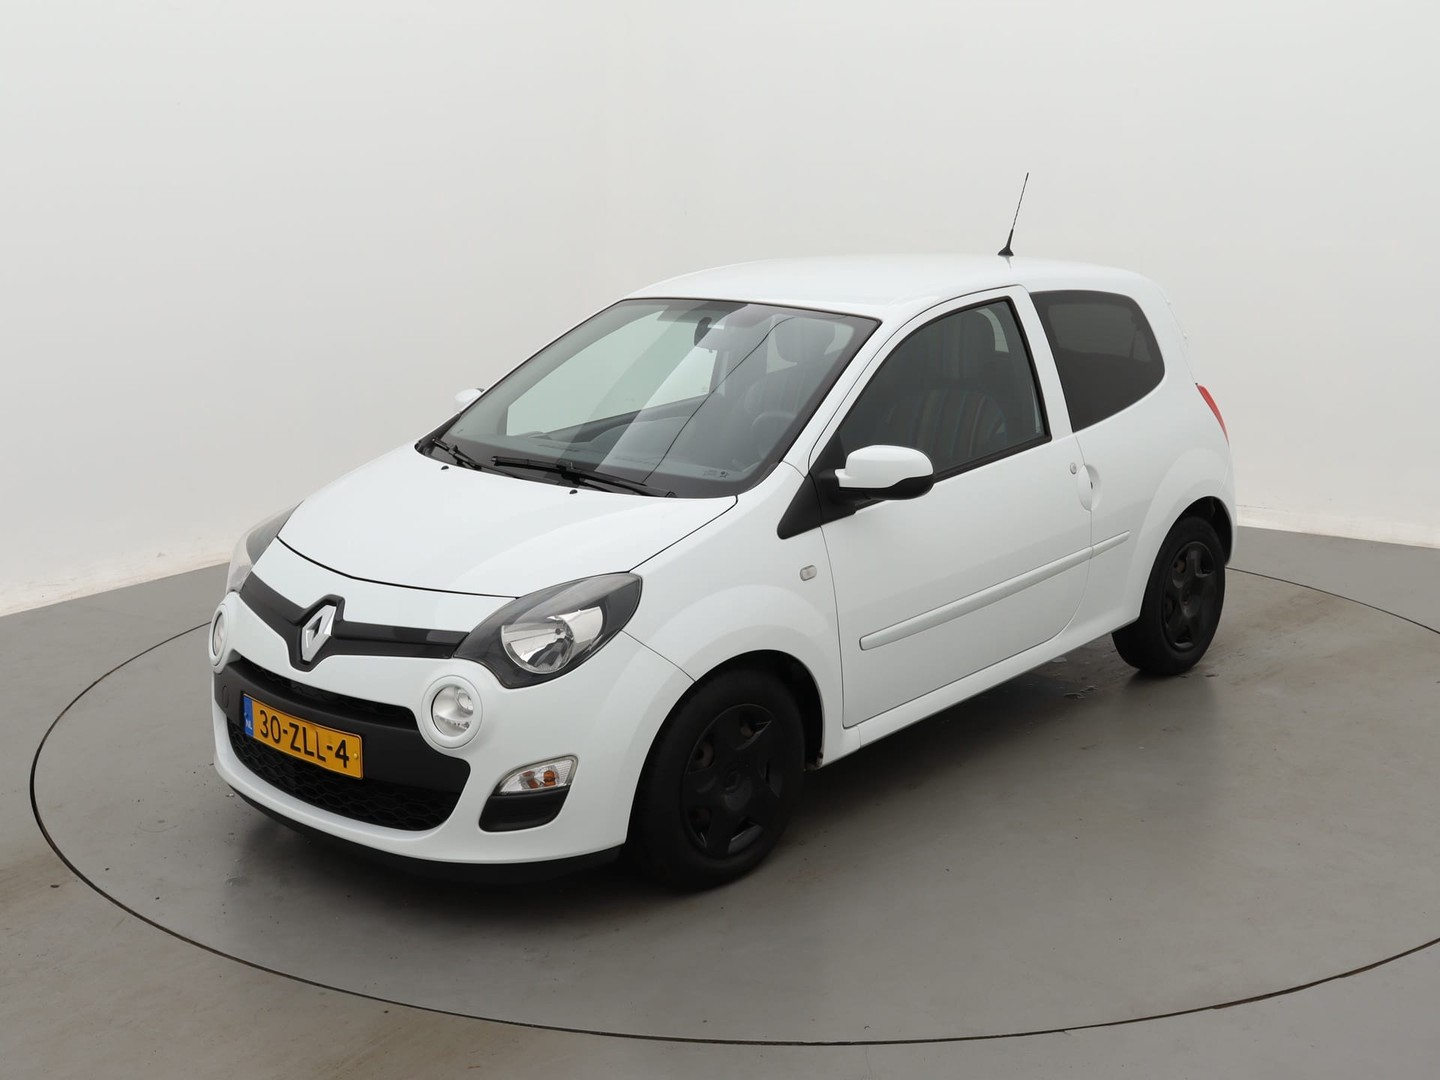 Renault Twingo 1.2 16v collection white & black / airco / bluetooth / cruise control